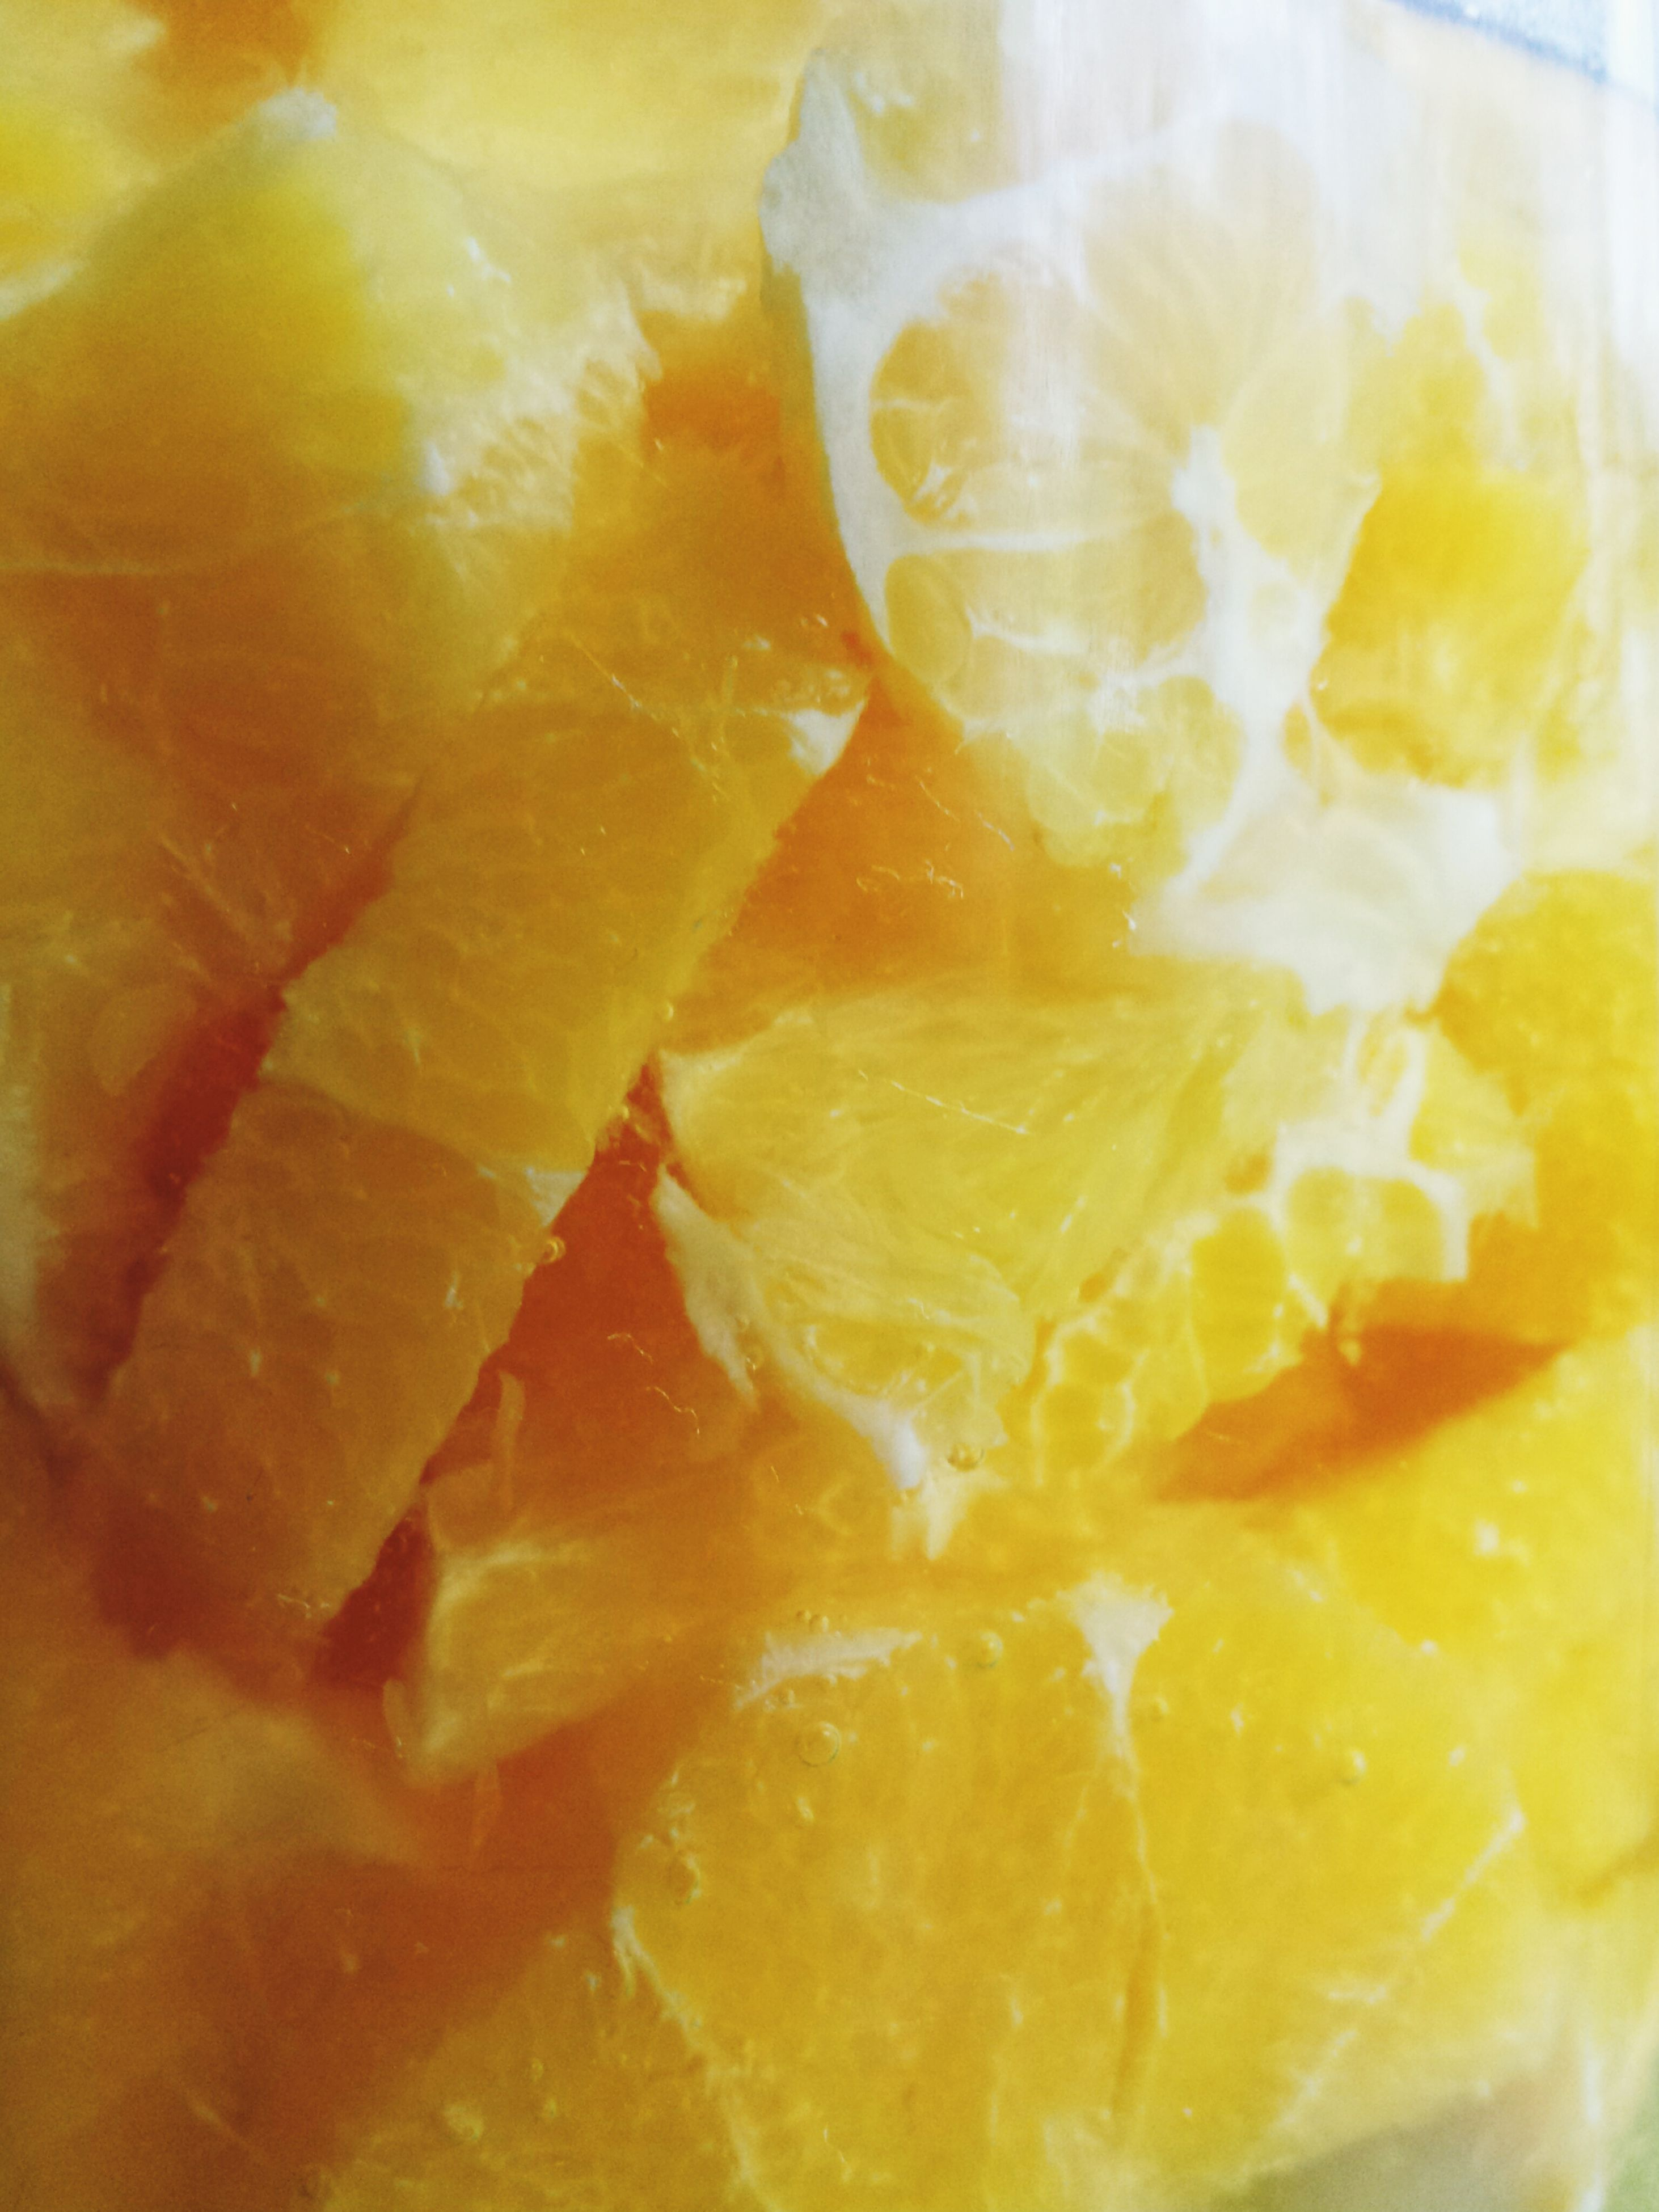 food and drink, food, freshness, indoors, close-up, sweet food, still life, indulgence, ready-to-eat, unhealthy eating, yellow, dessert, full frame, slice, temptation, backgrounds, no people, fruit, high angle view